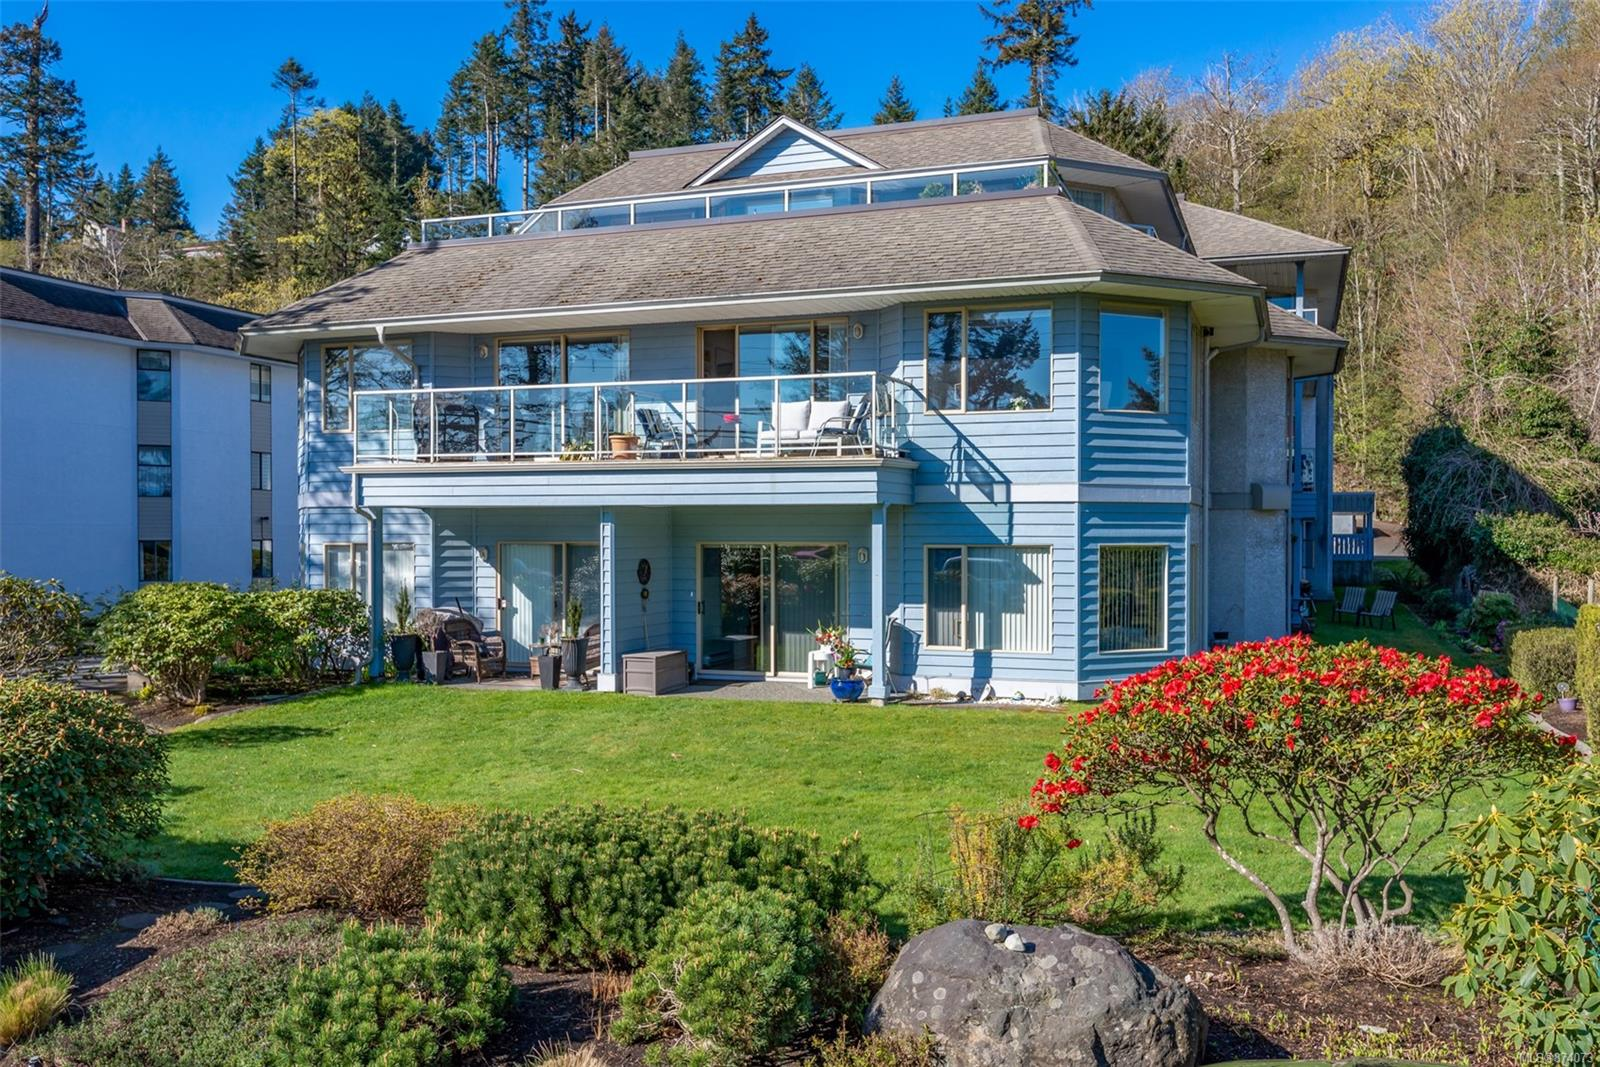 204 - 738 S Island Highway, Campbell River Central, Campbell River photo number 2